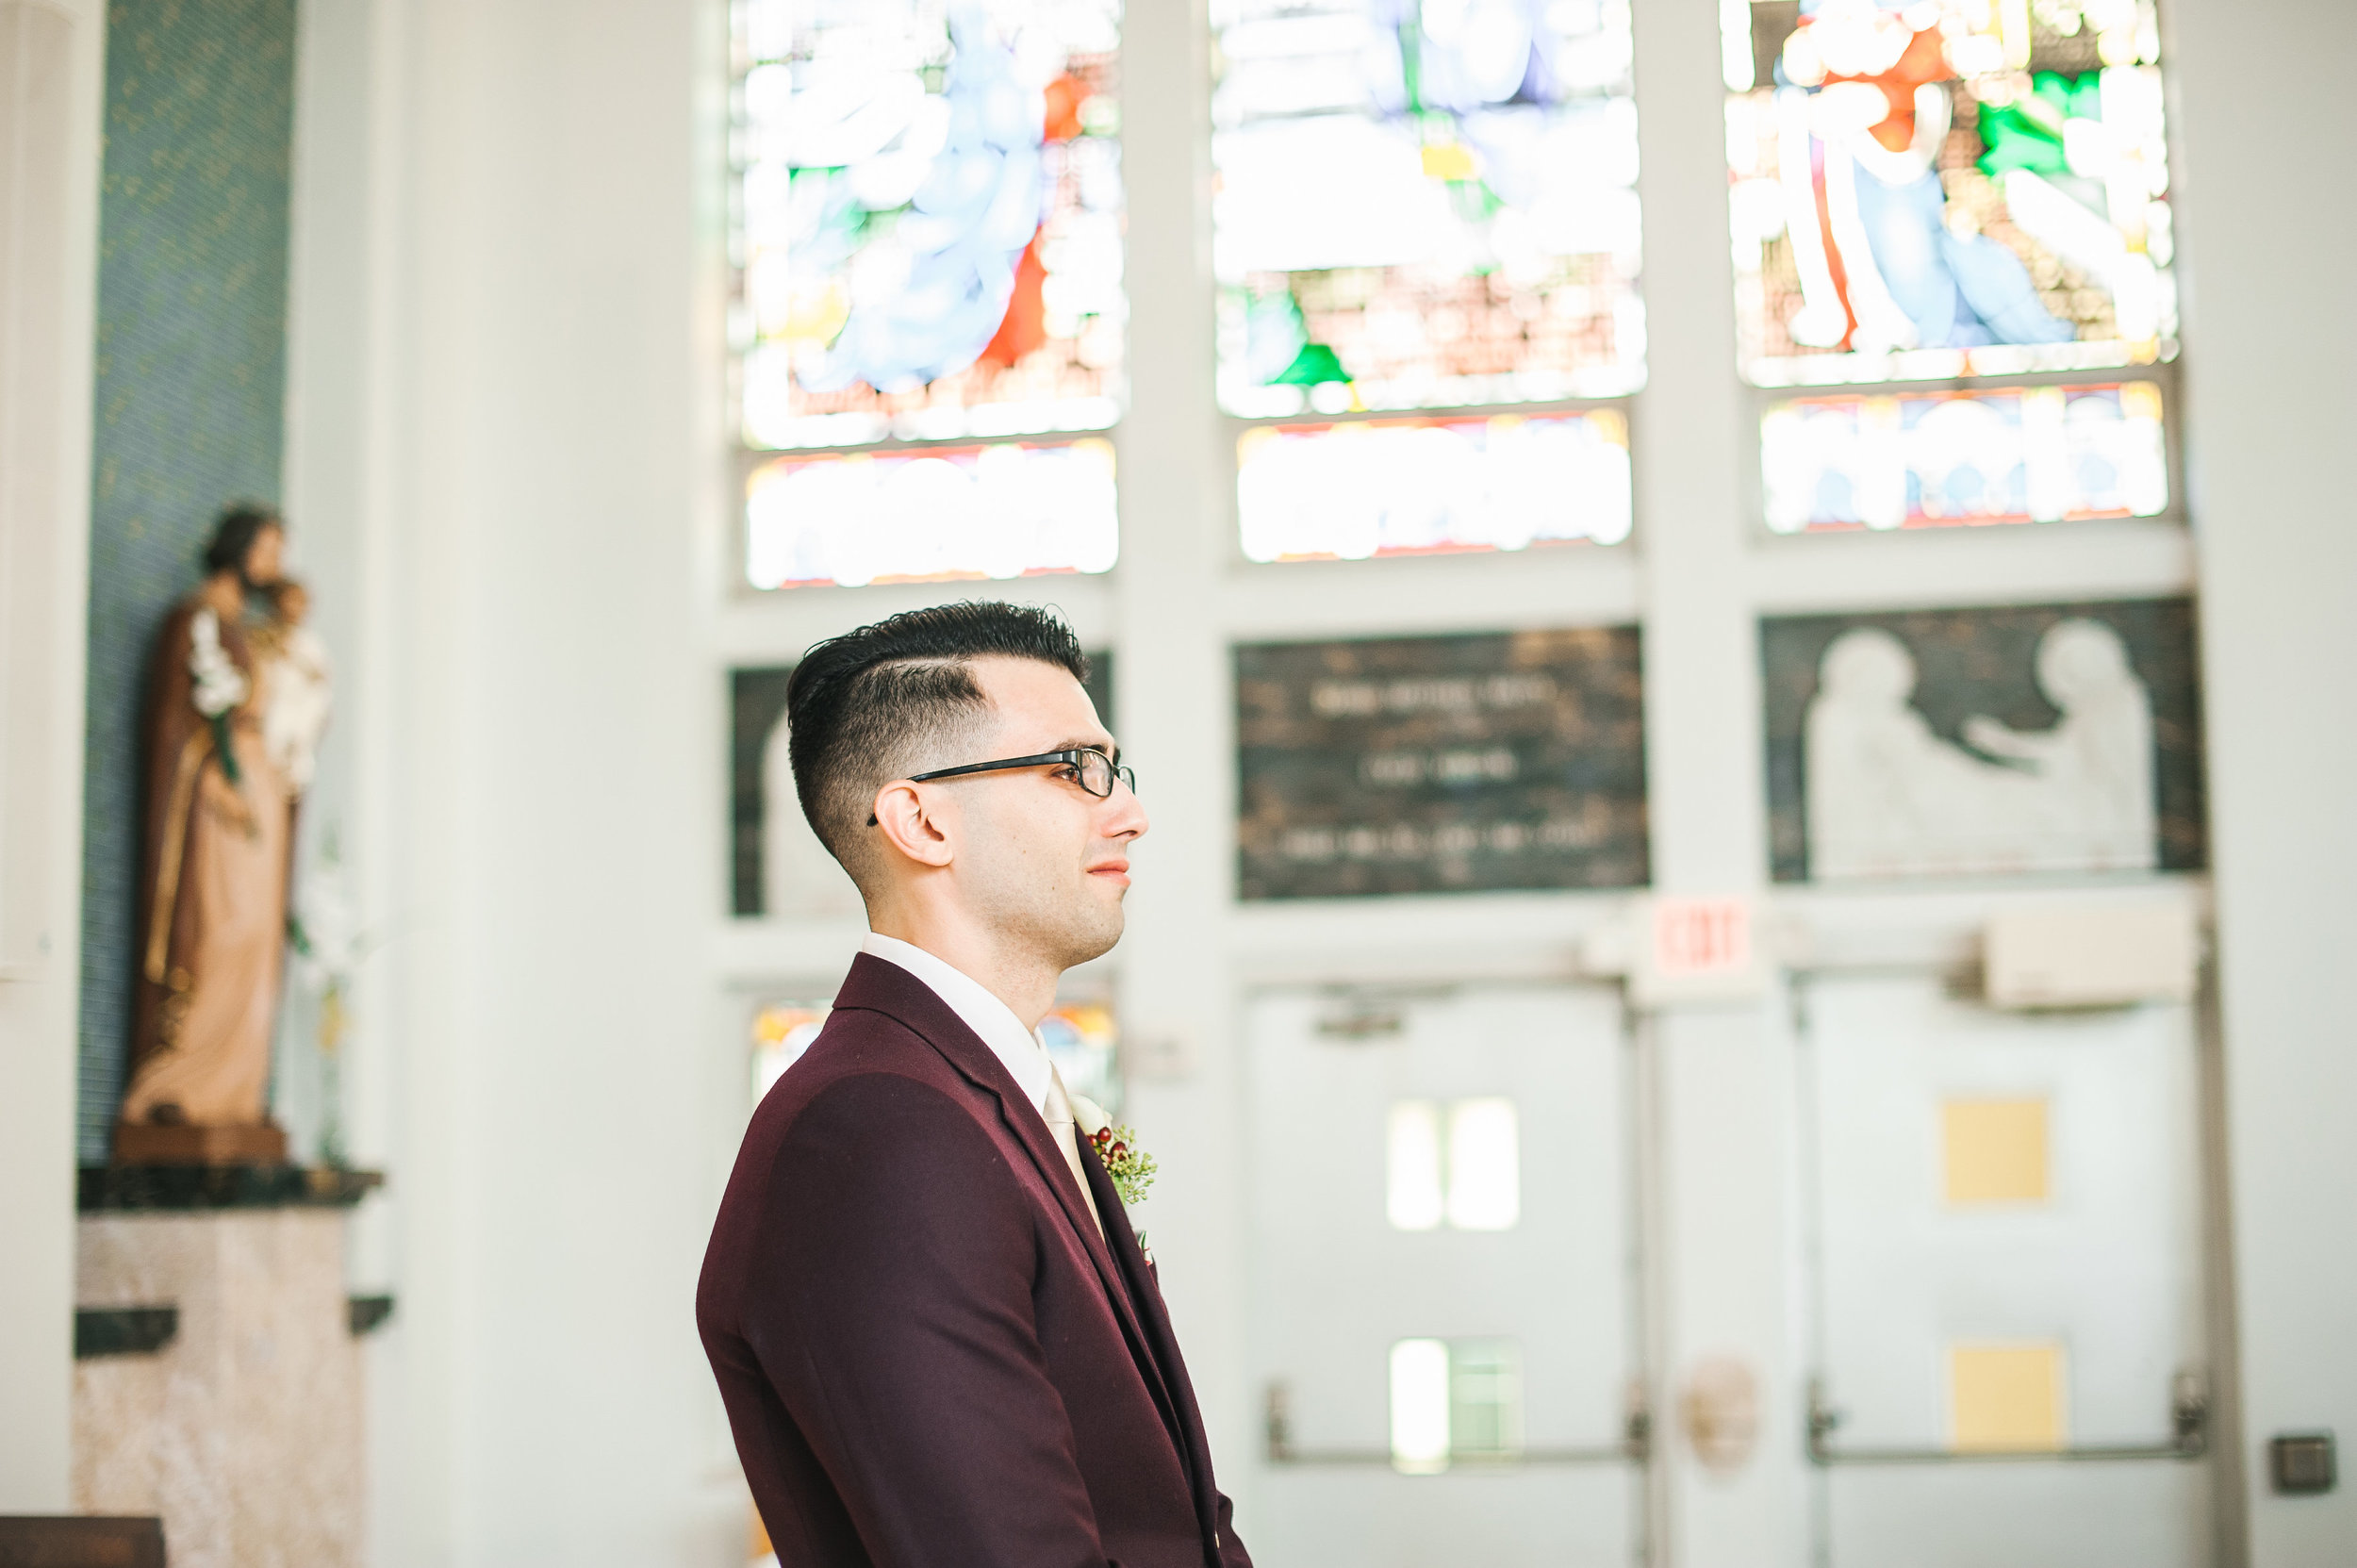 A teary-eyed groom watching his bride walk towards him (always one of our favorite moments).